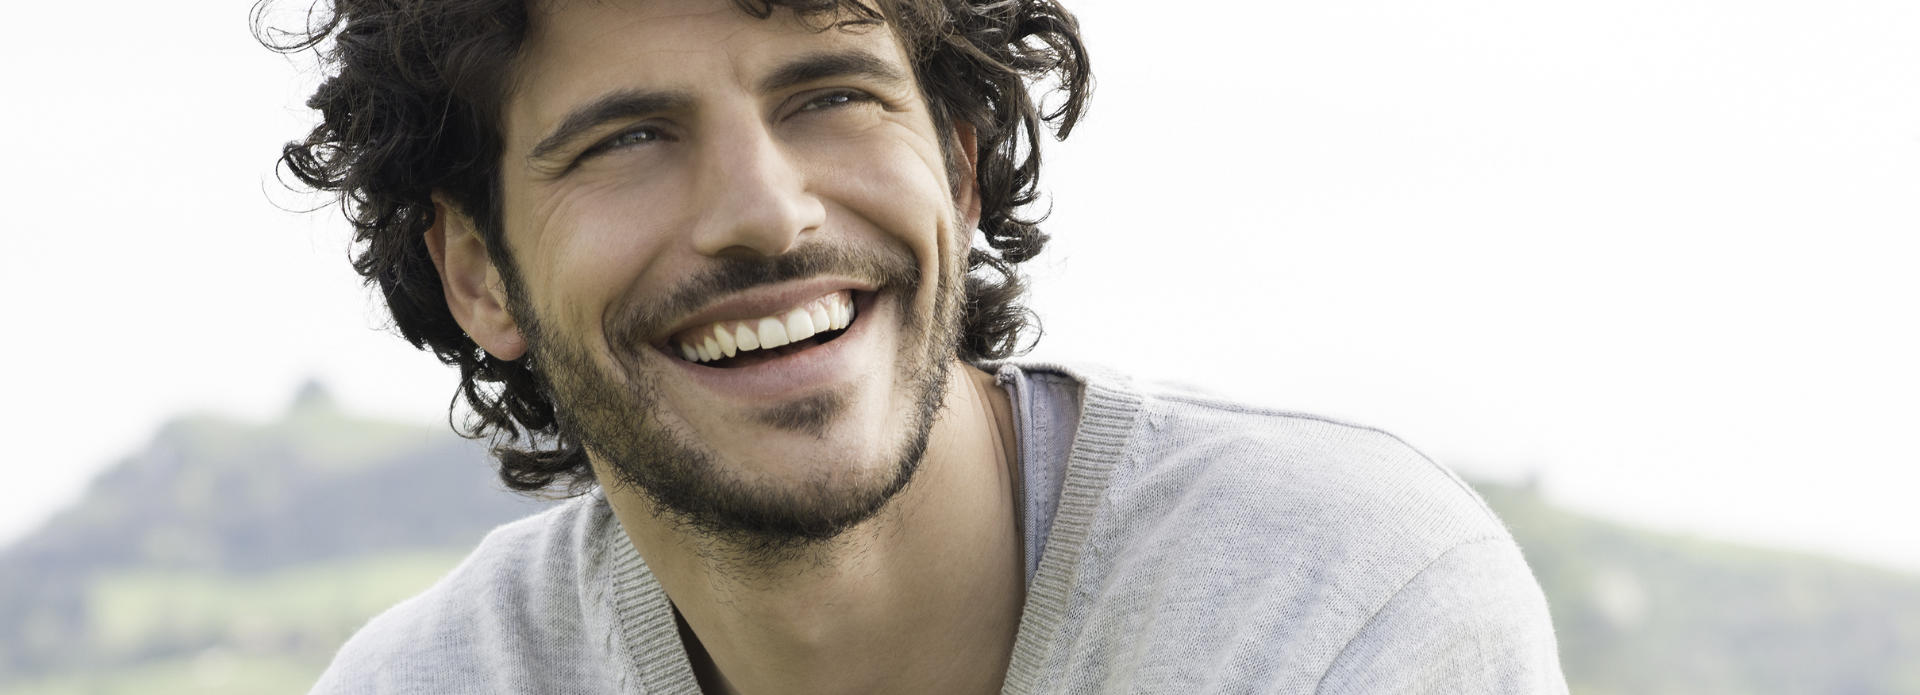 smiling handsome man with curly hair